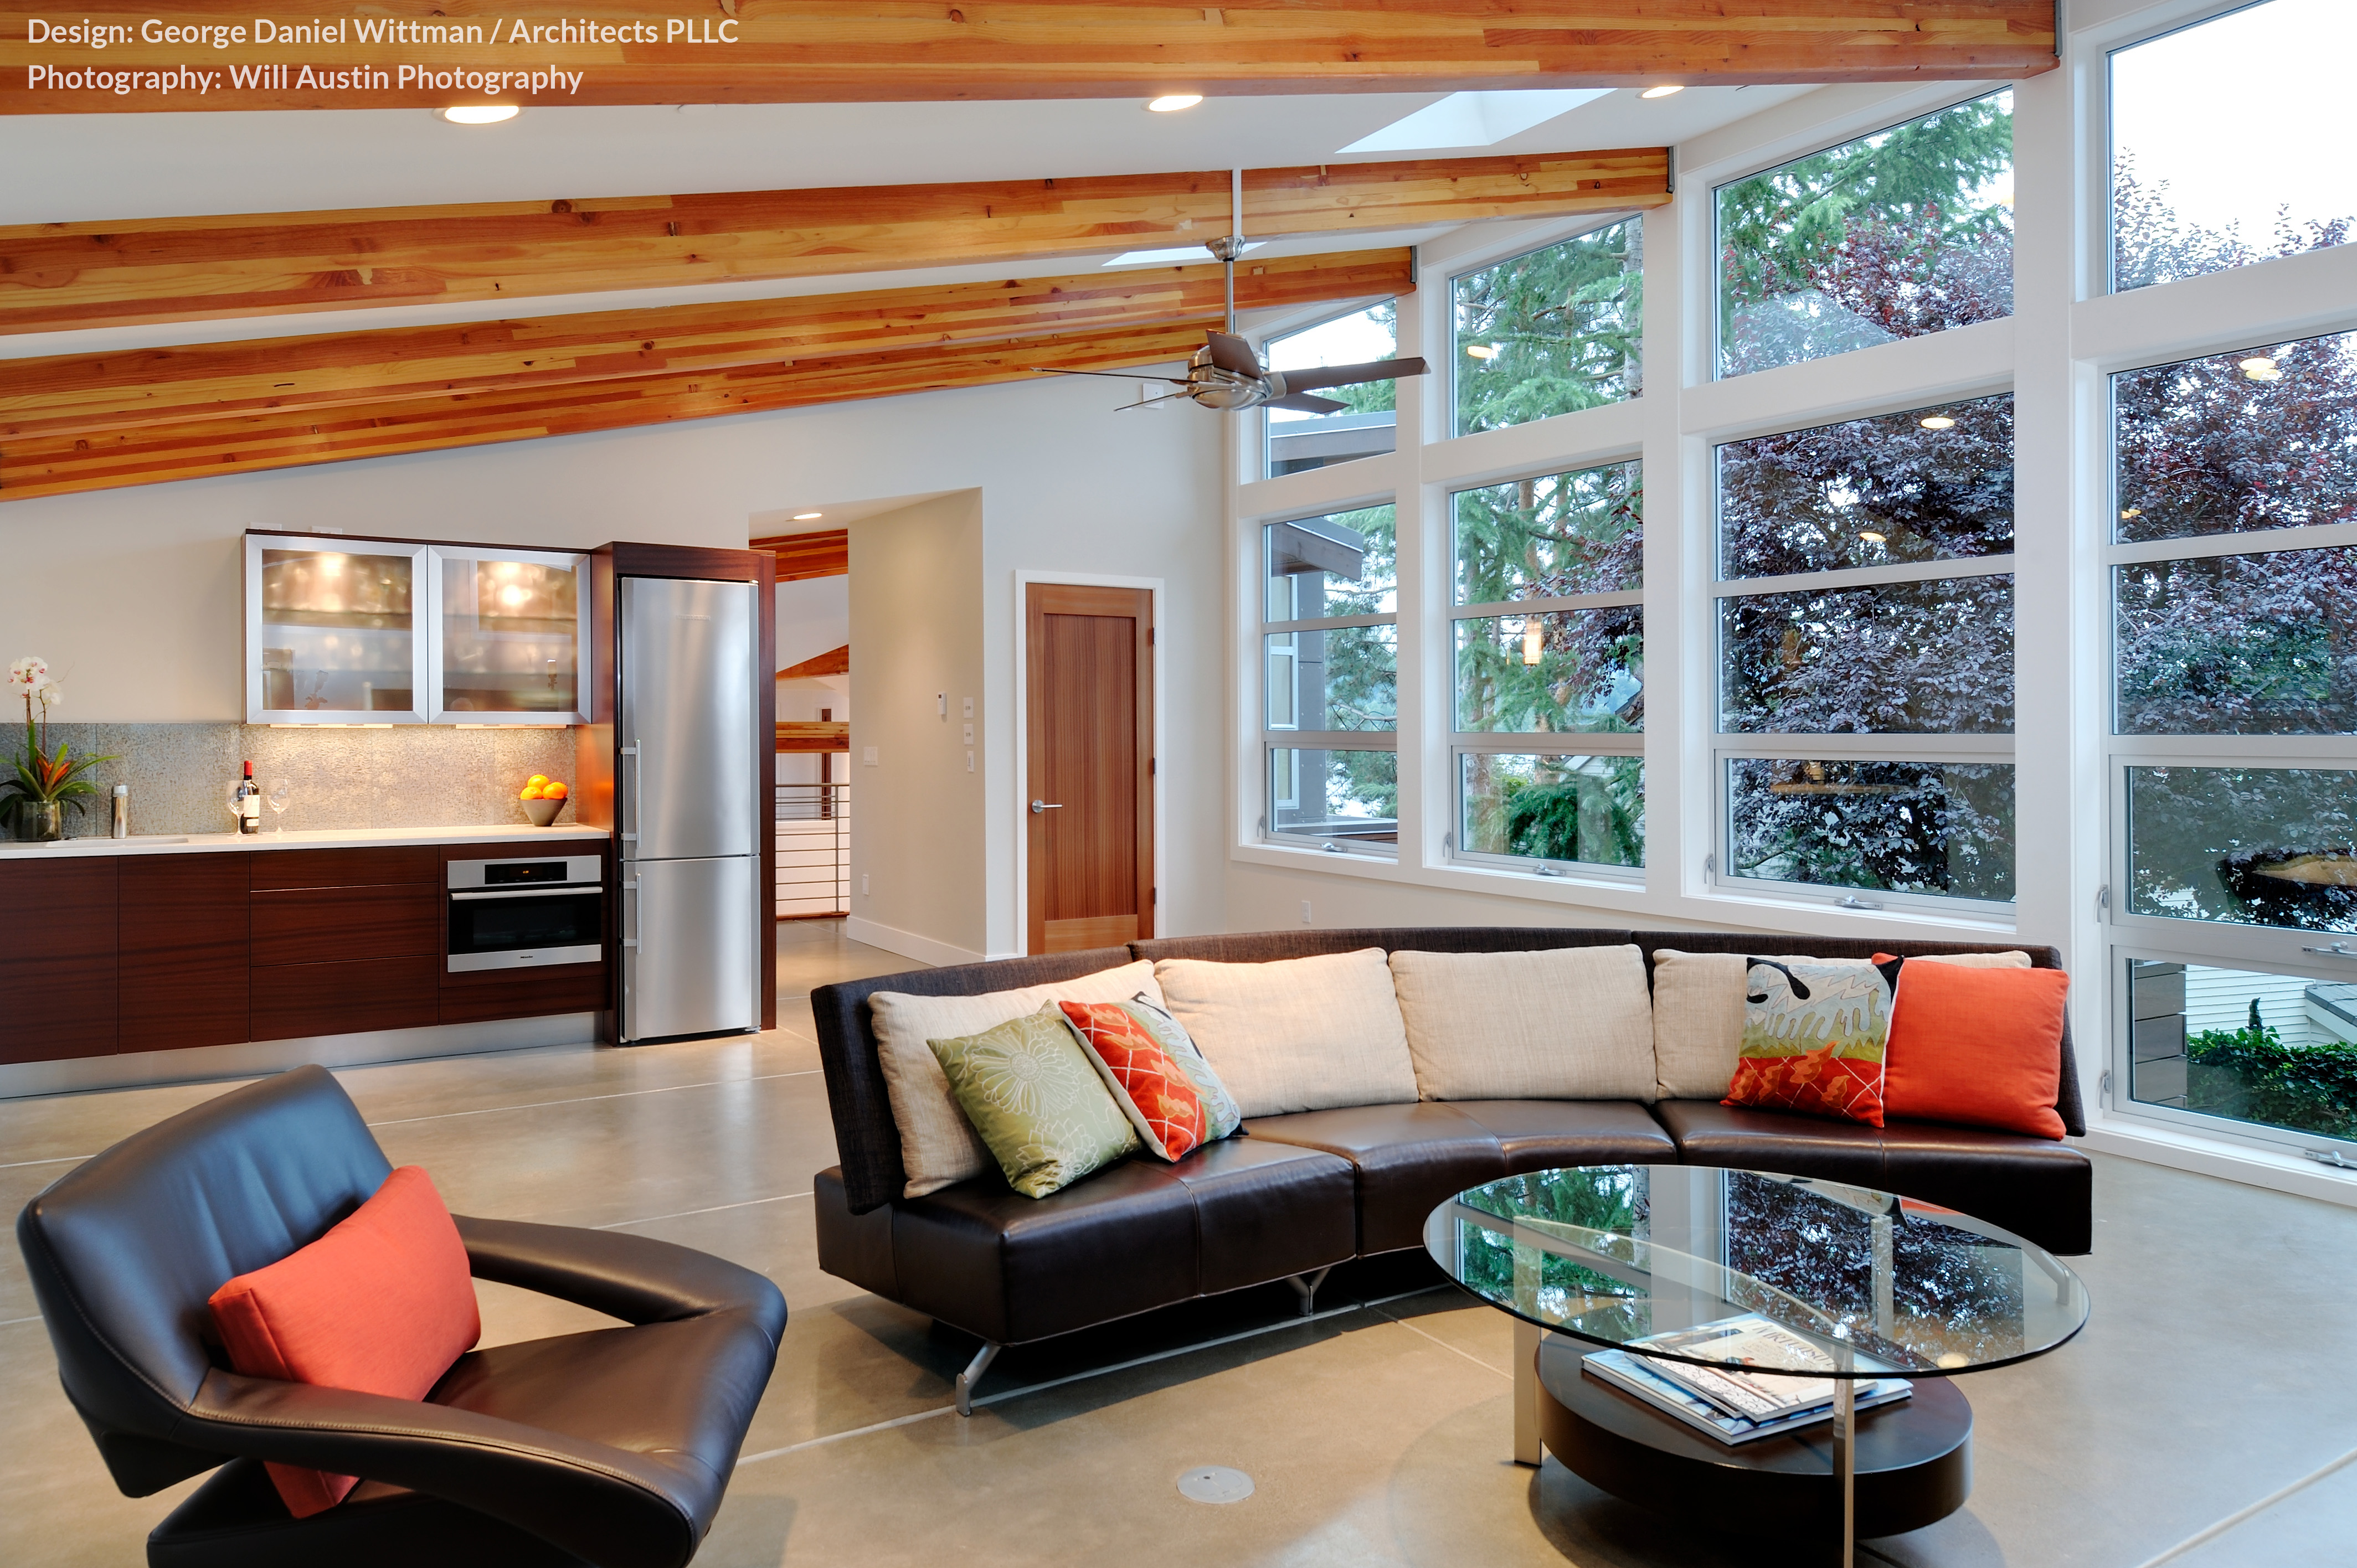 This larger living room space stands under an expansive sloped ceiling, where exposed beams meet the floor to ceiling array of windows at right. Curved dark leather sectional and modern accent chair pair with a multi-tiered wood, metal, and glass coffee table.